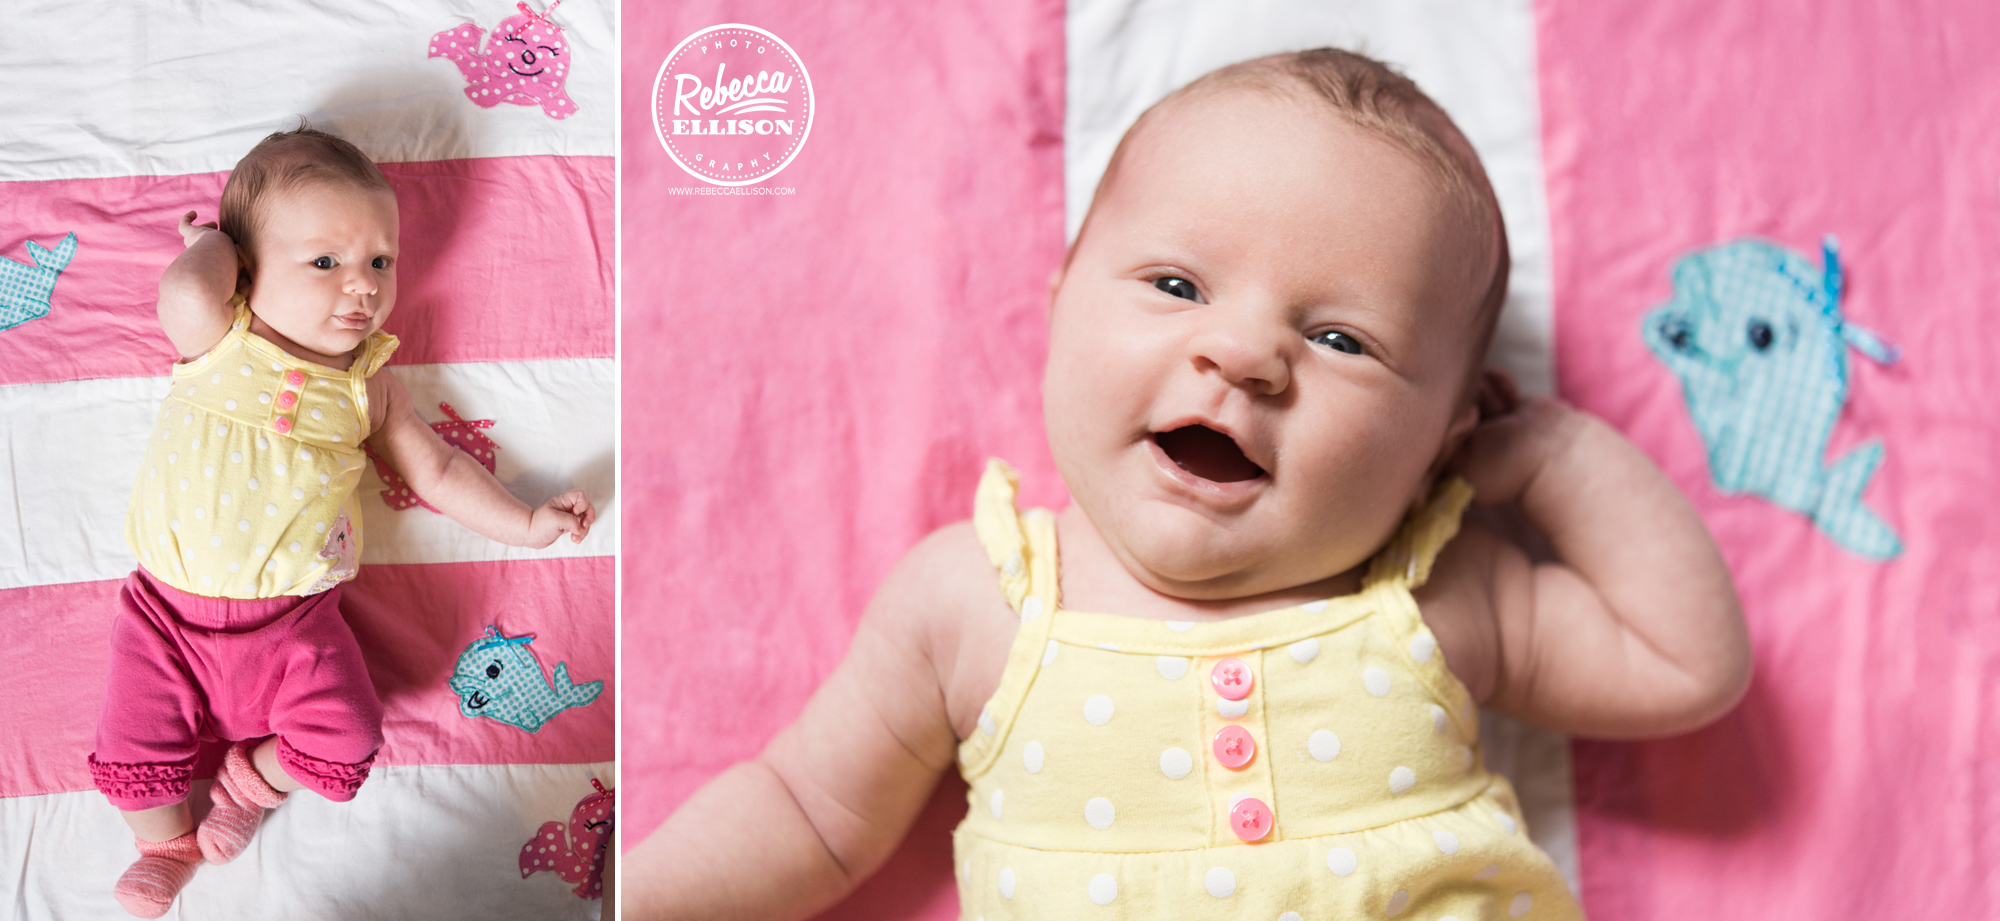 Adorable baby girl smiles on a pink and white blanket photographed by Shoreline Baby Photographer Rebecca Ellison